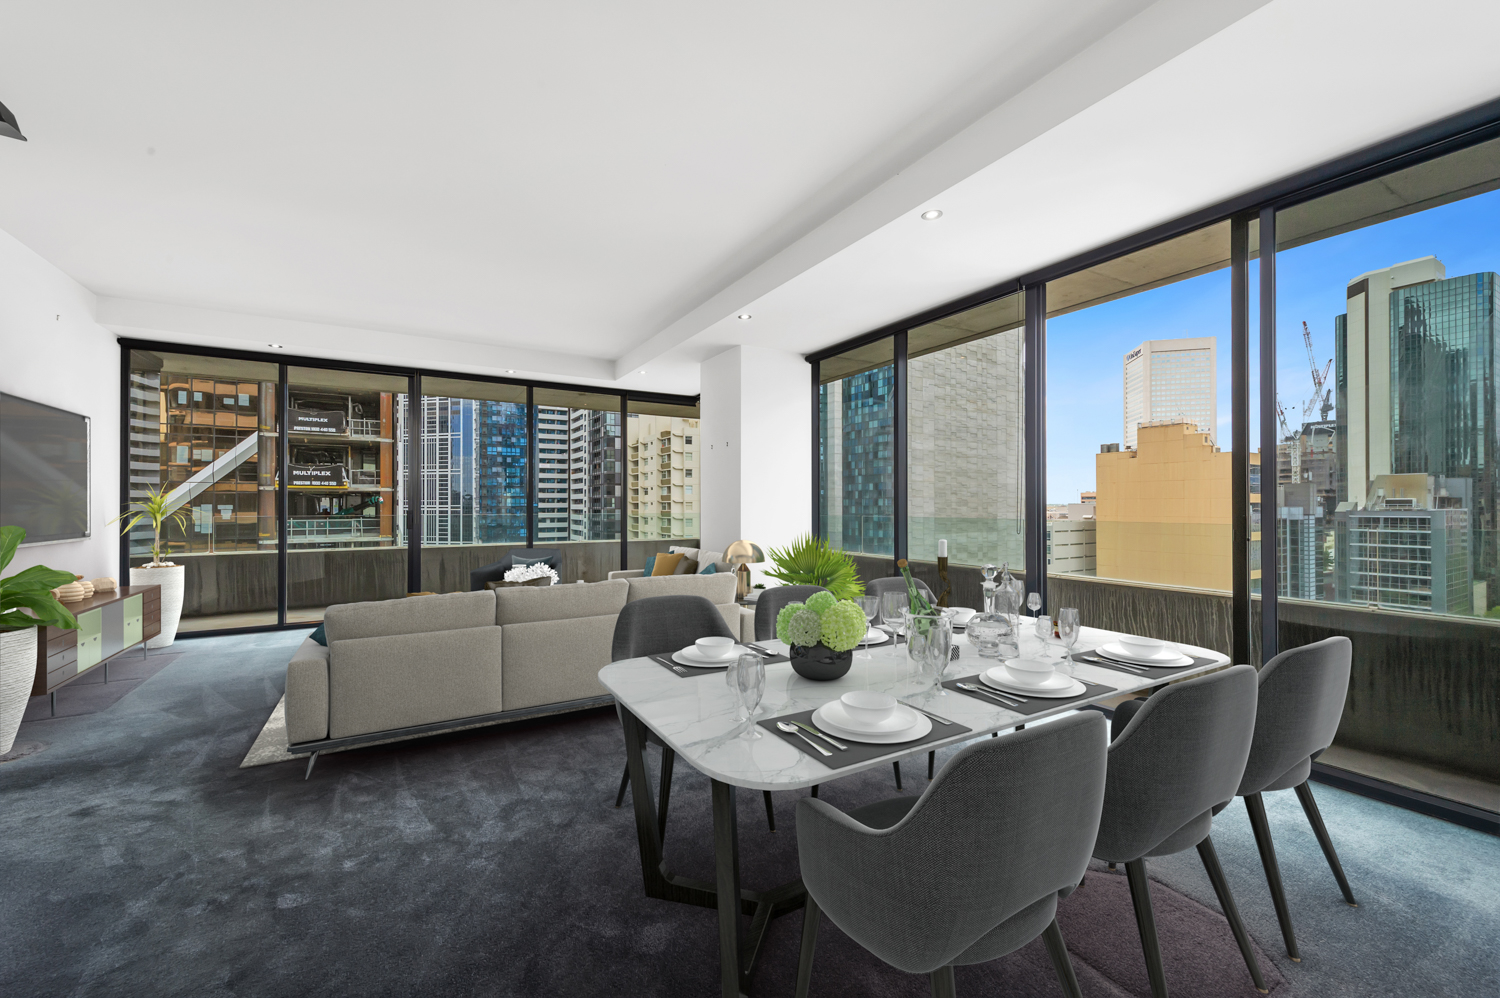 152-299-queen-street-melbourne-student-accommodation-Melbourne-Dining-Area-Unilodgers